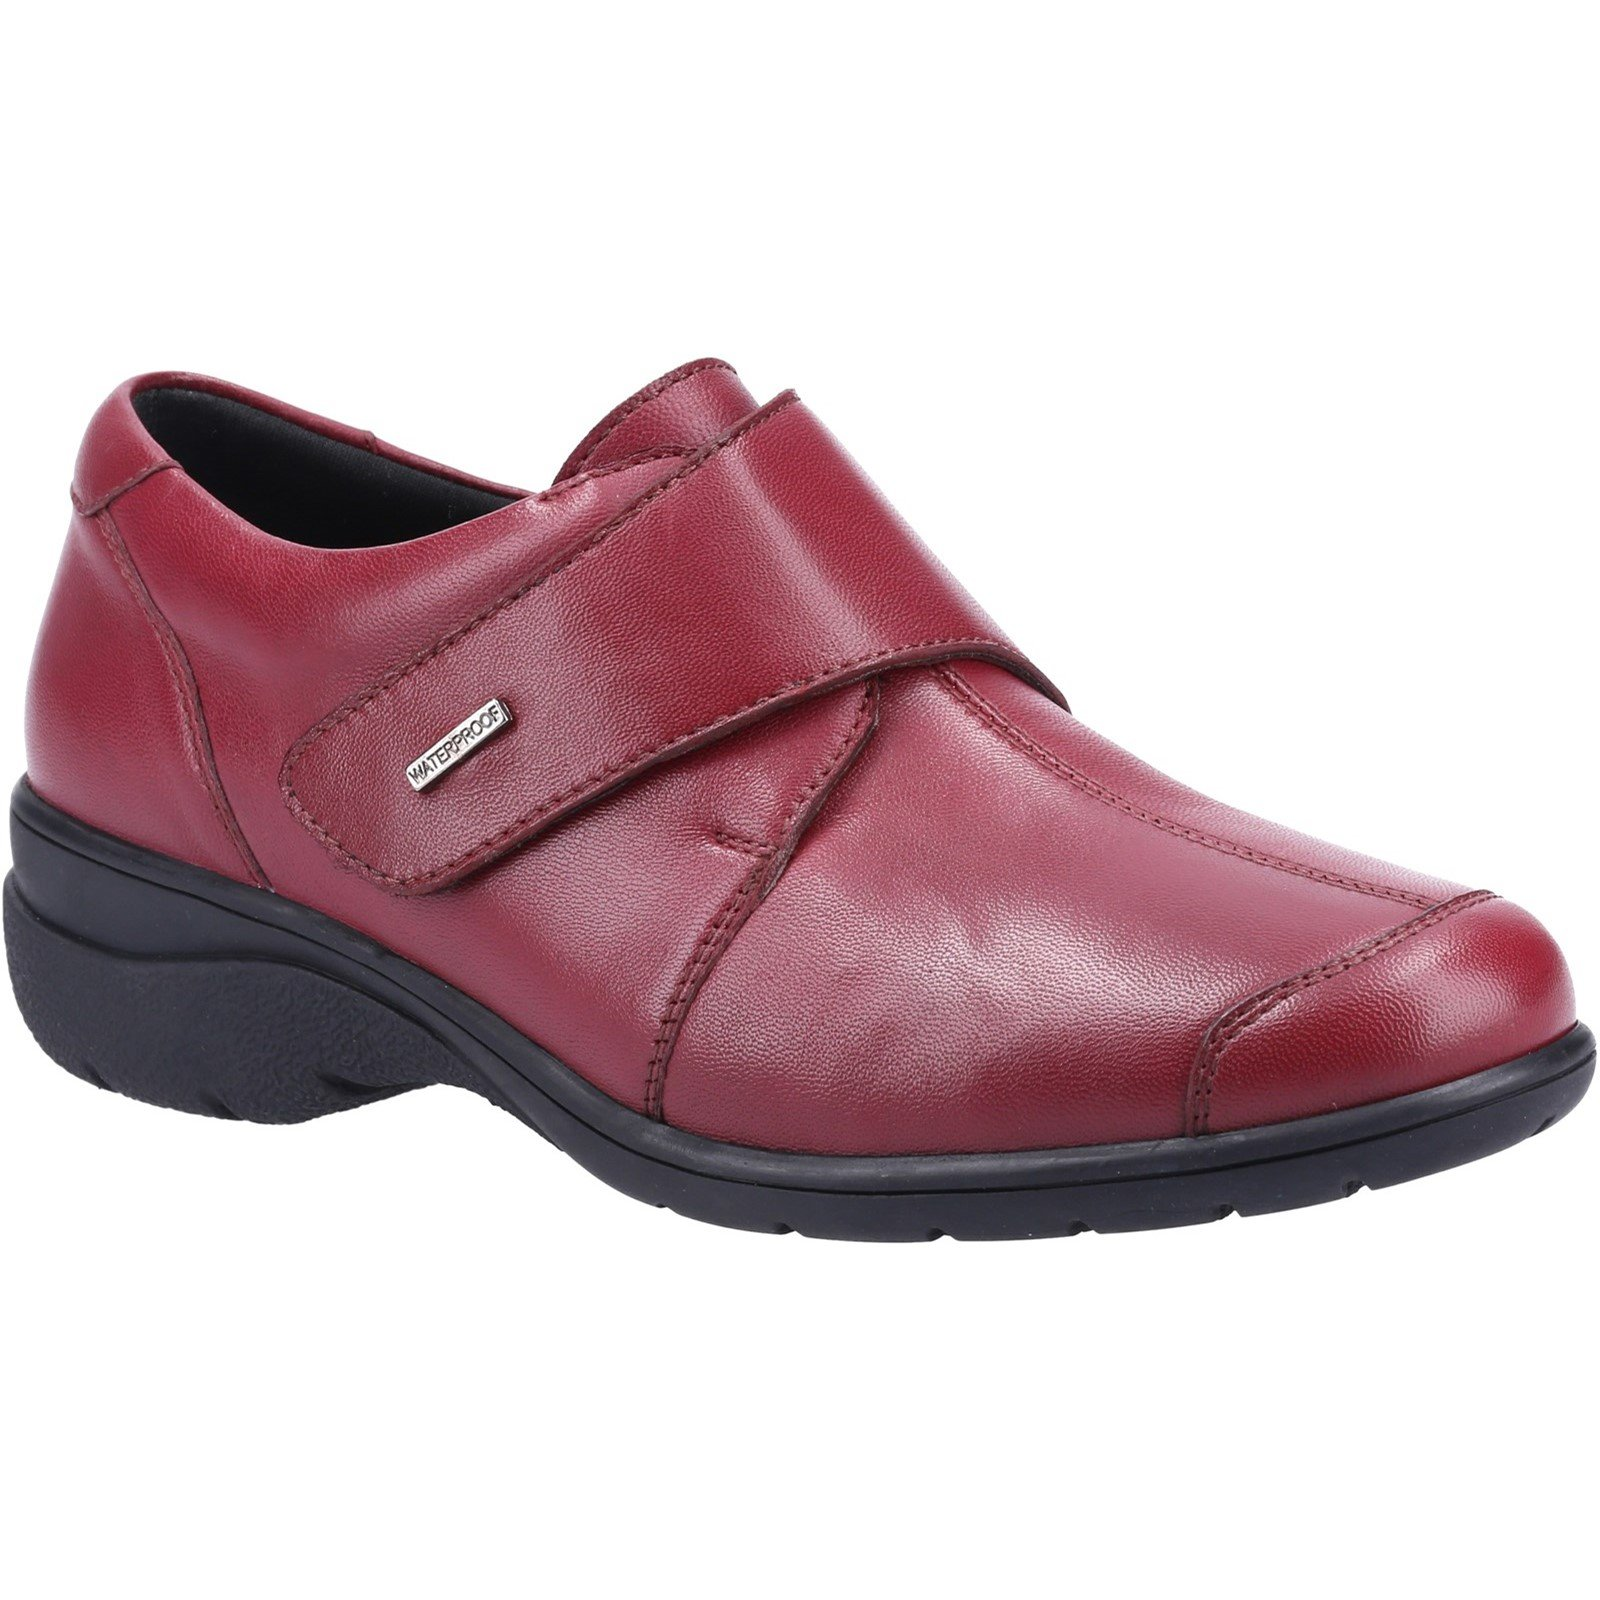 Cotswold Women's Cranham Touch Fastening Trainer Various Colours 32980 - Red 8